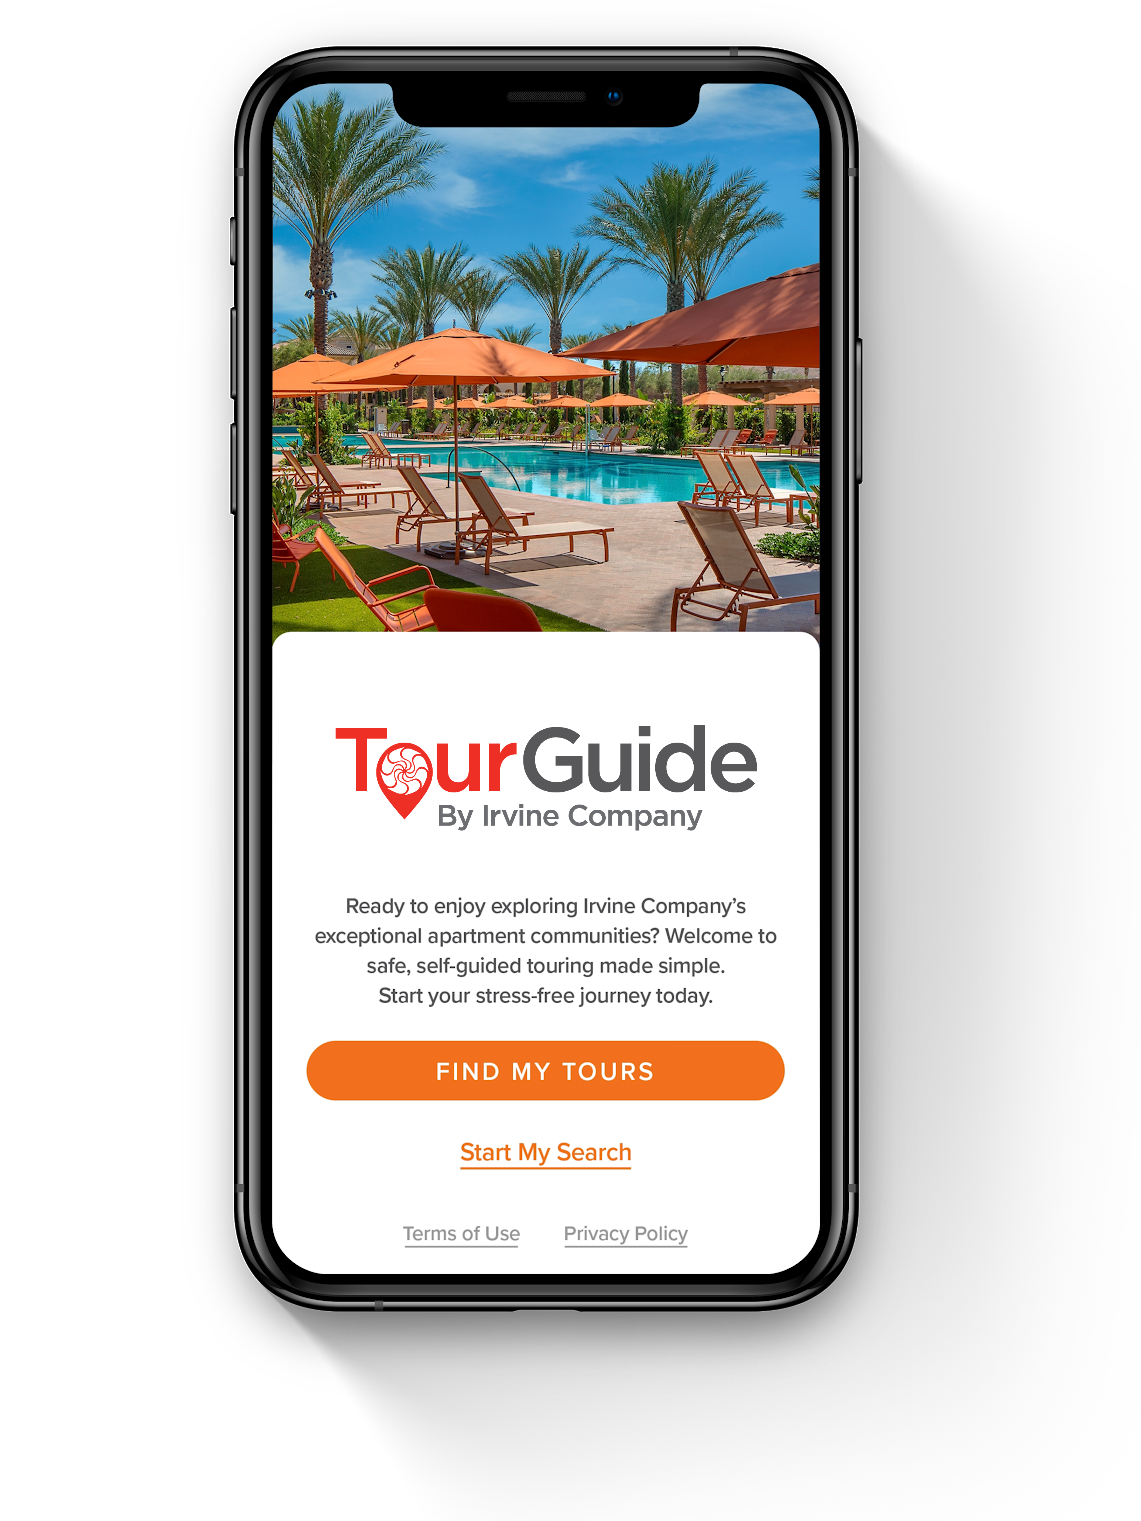 TourGuide by Irvine Company app in phone